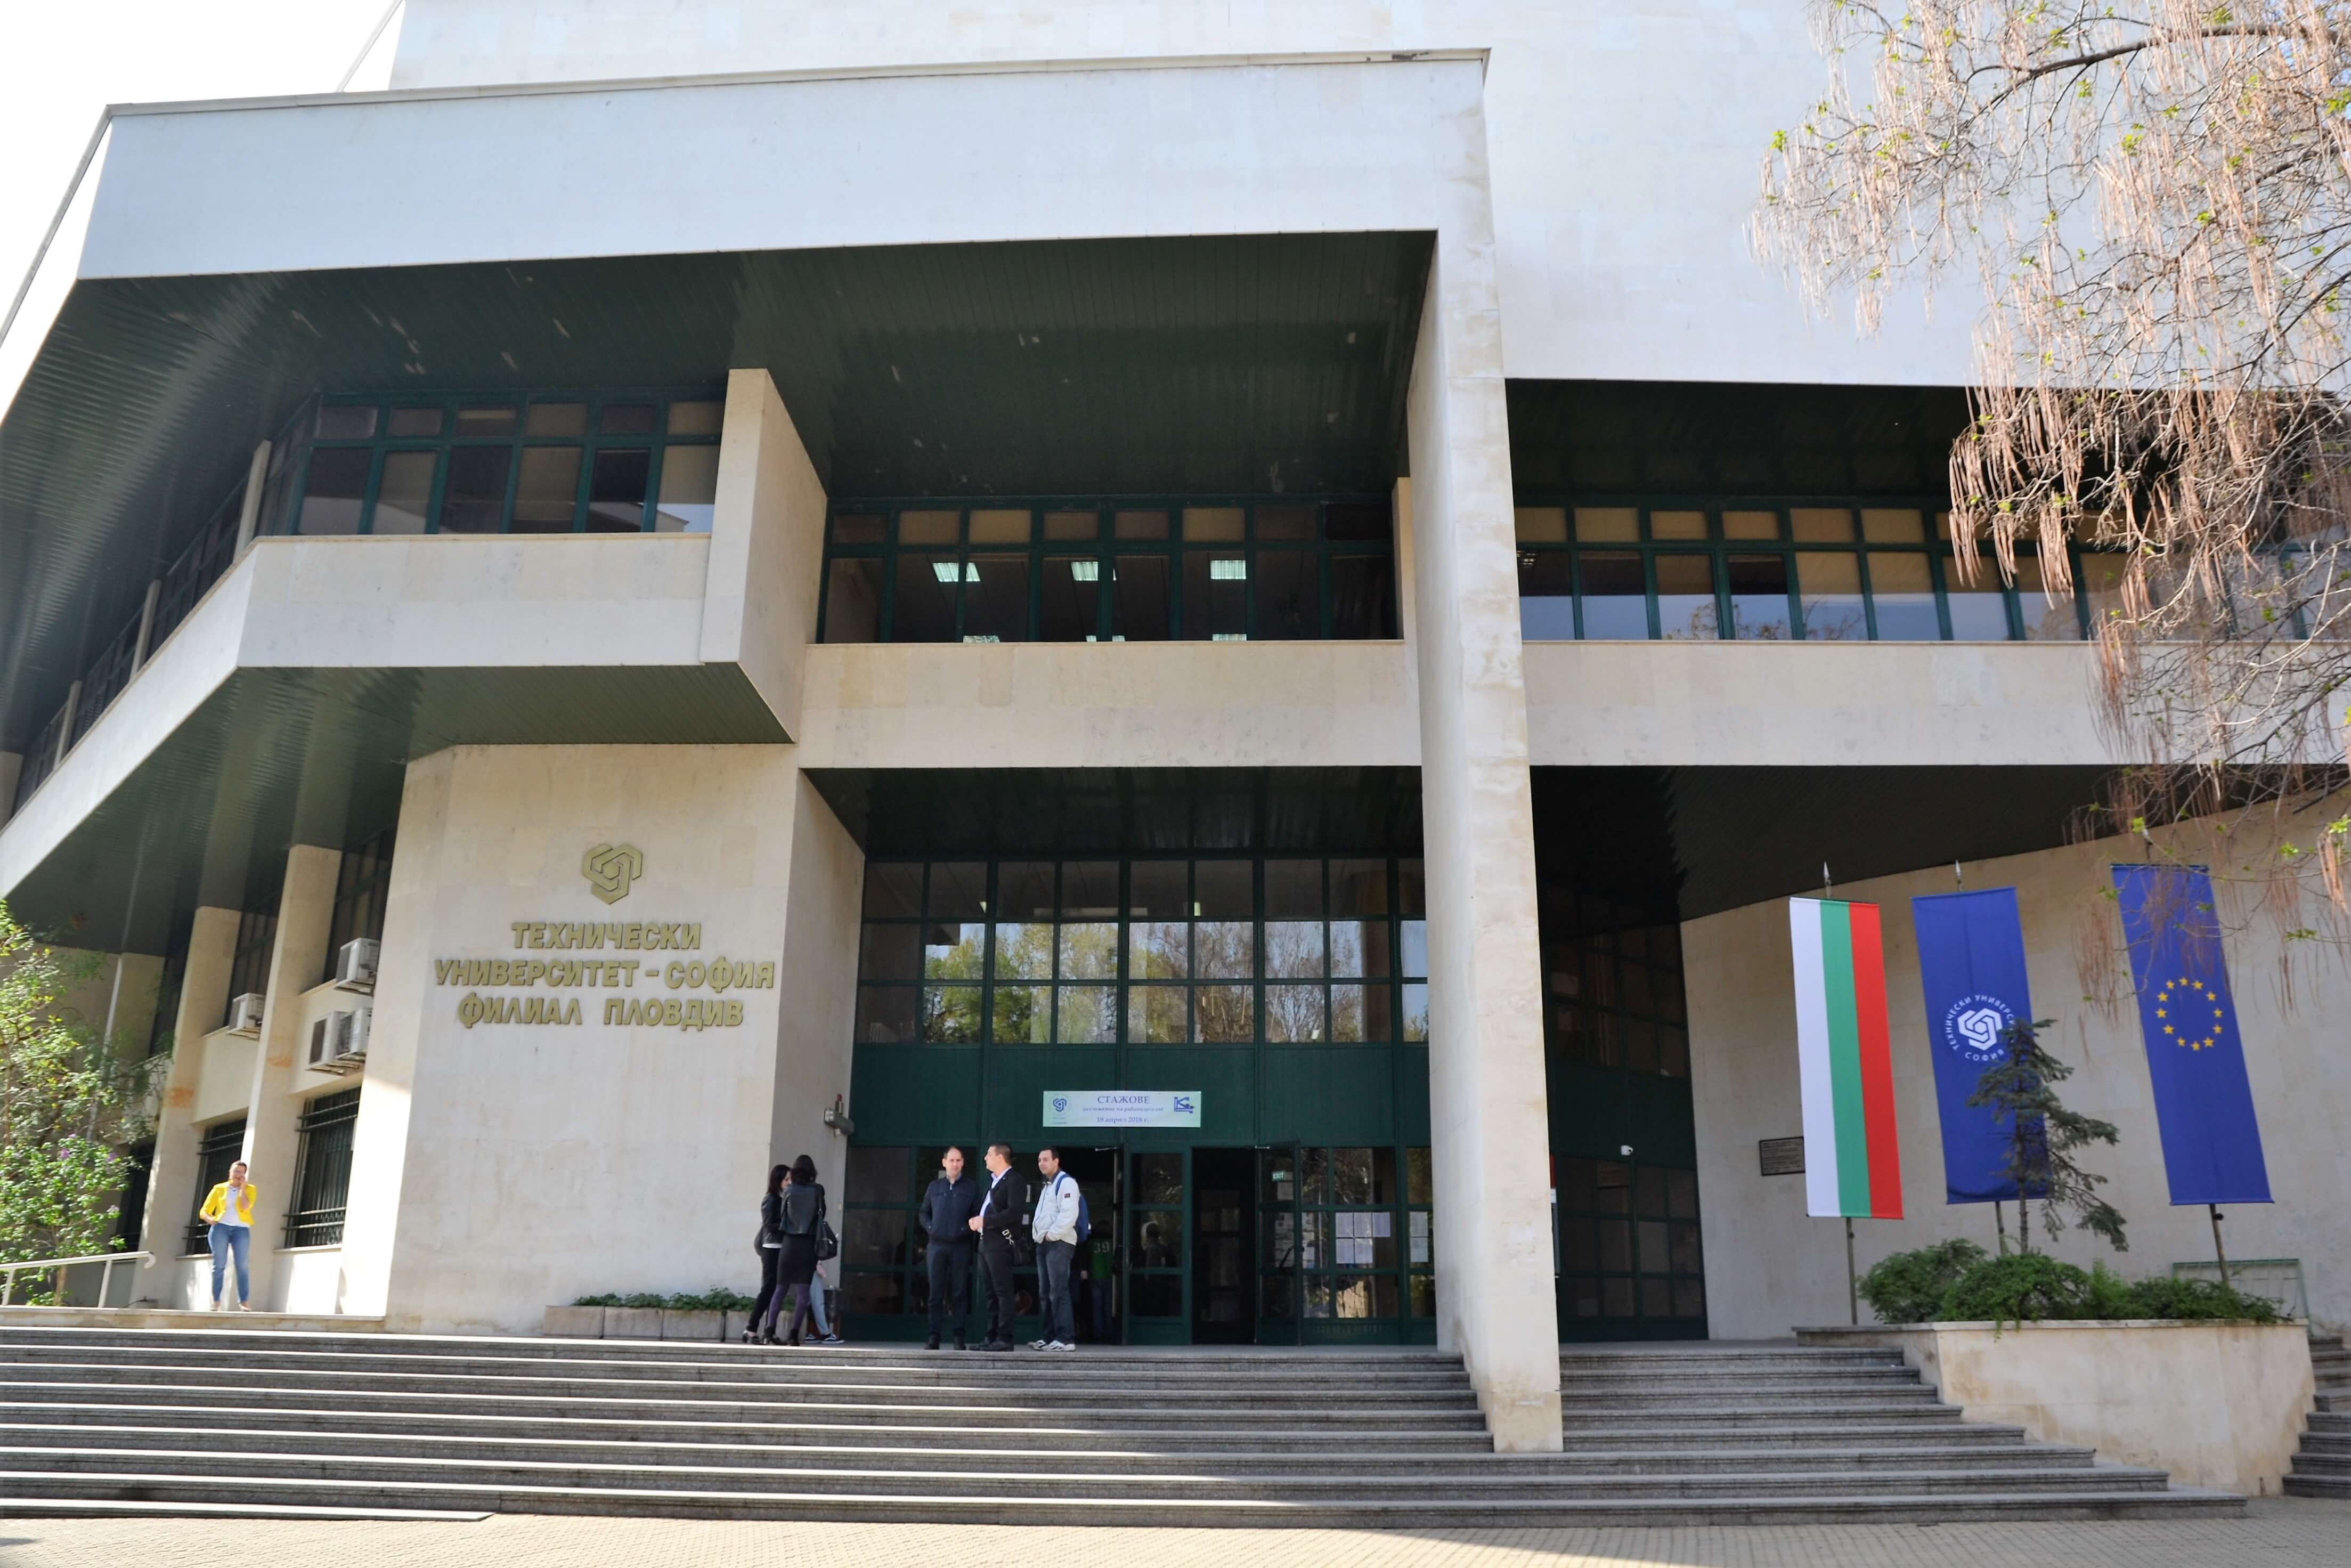 Technical University of Sofia - Plovdiv Branch